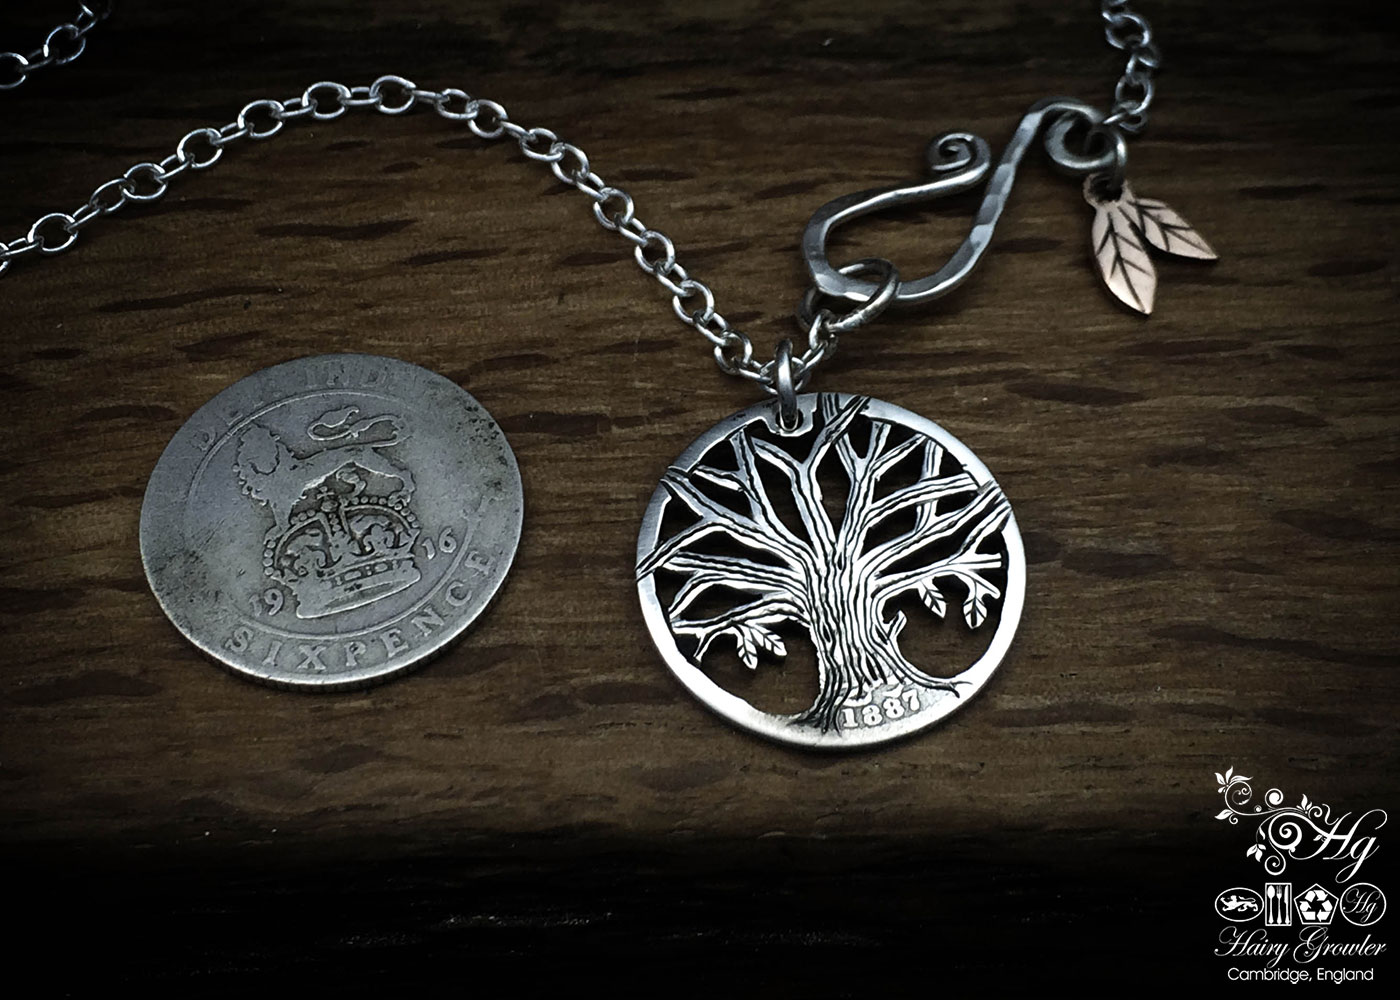 Handcrafted and repurposed silver sixpence coin autumn tree pendant necklace